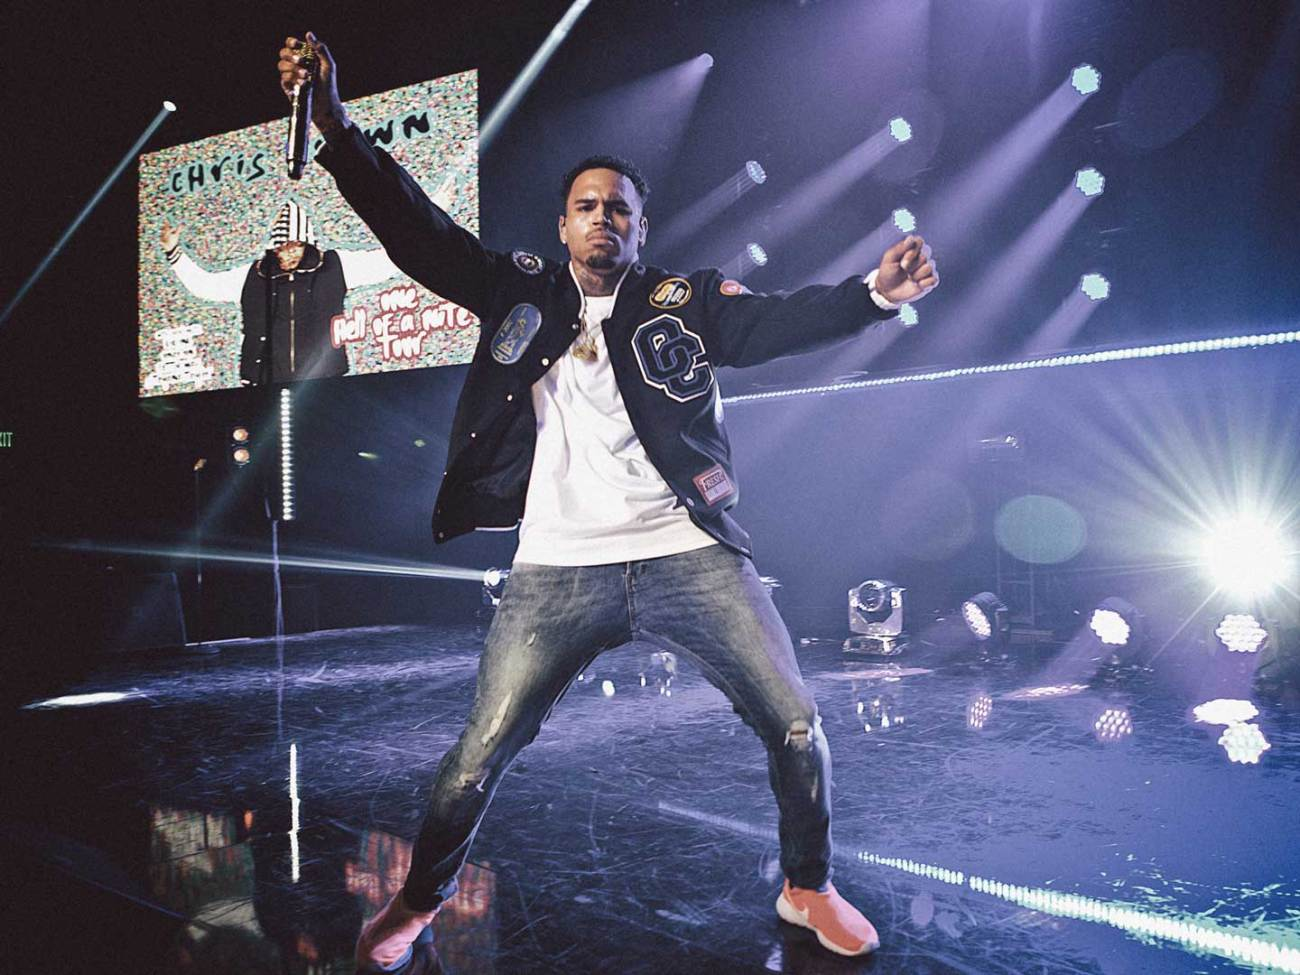 Chris Brown live at the iHeartRadio Live in Los Angeles